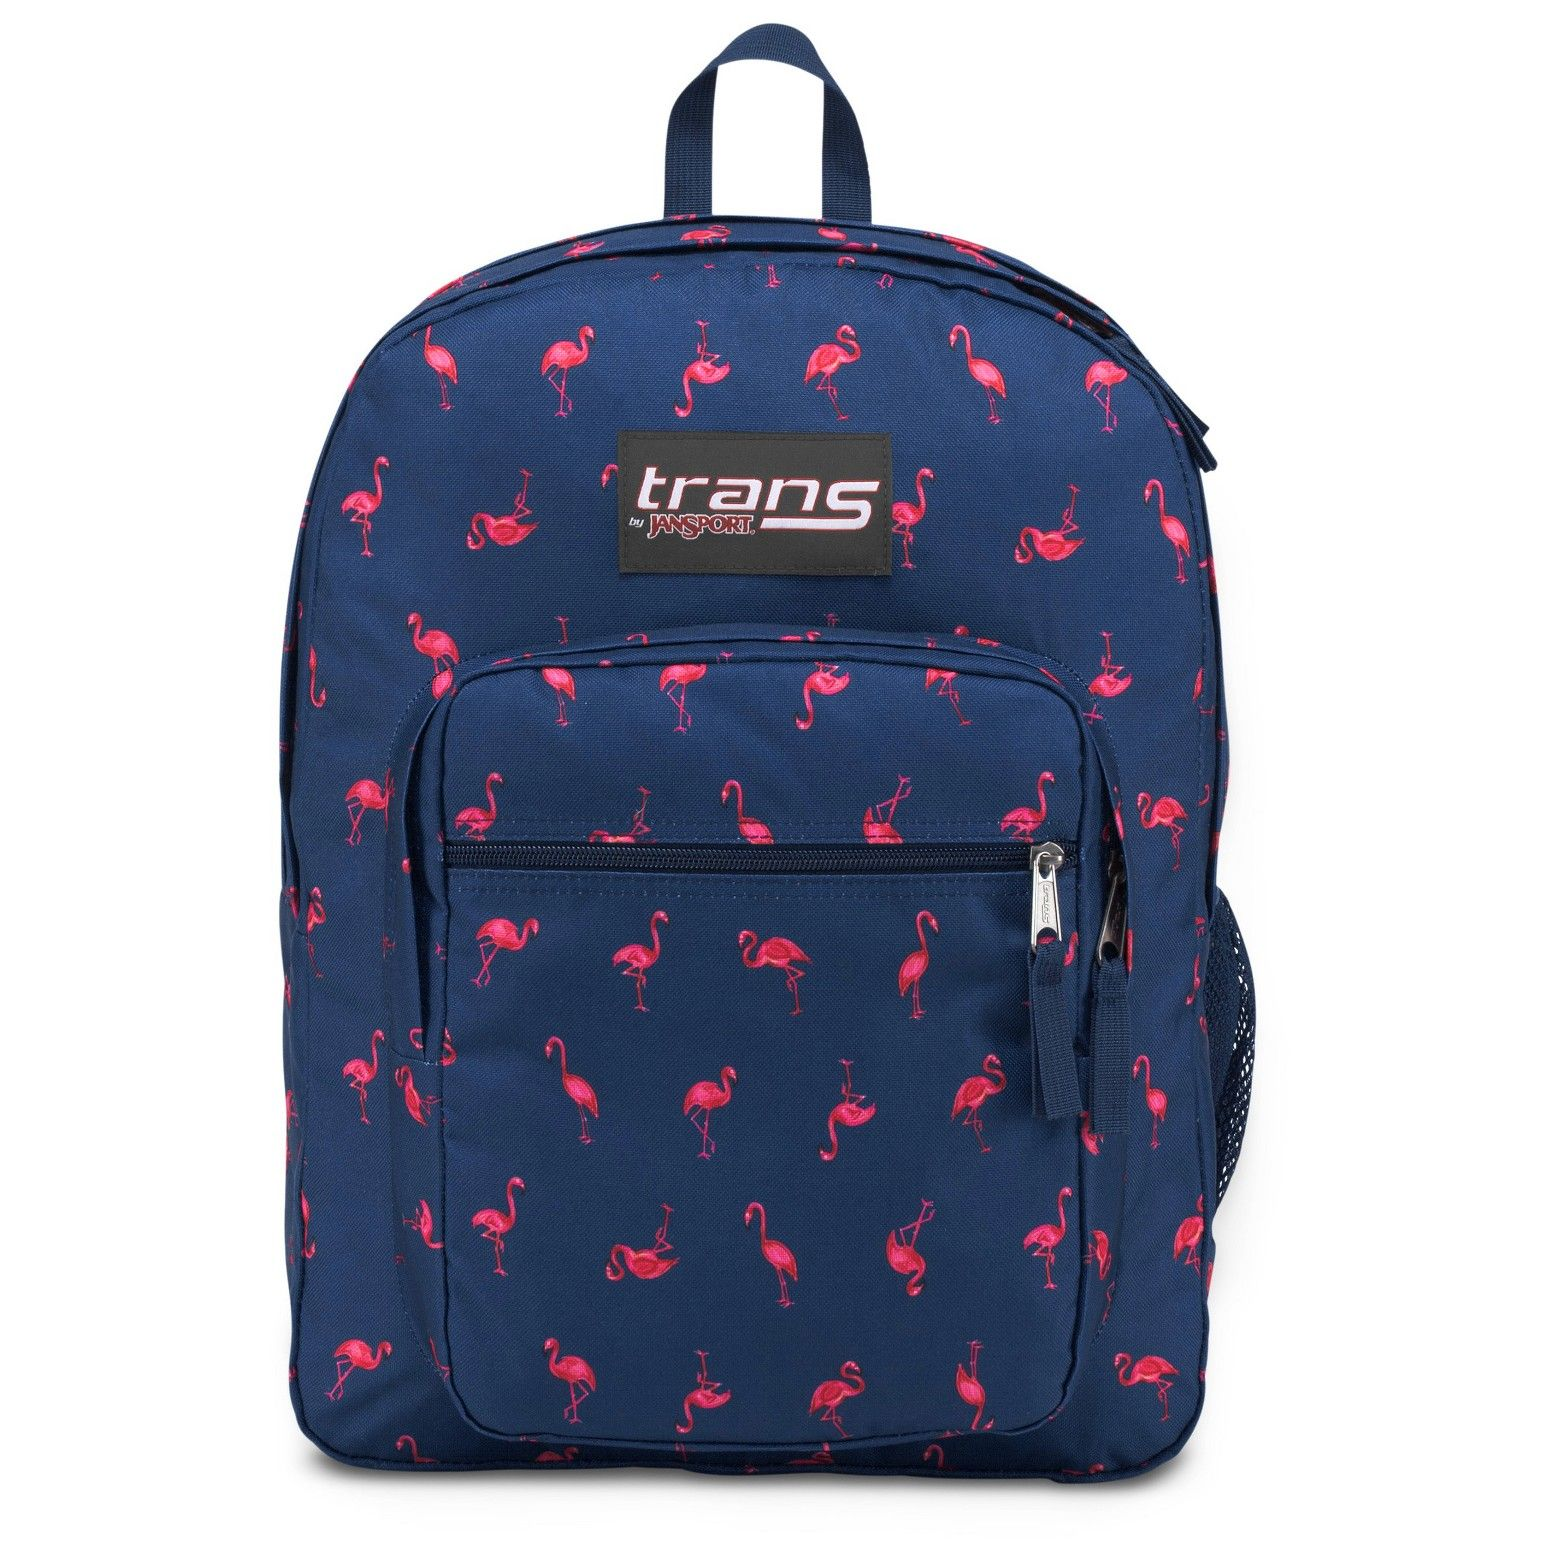 Make a statement with a Trans by JanSport fbb962cf1ffa9